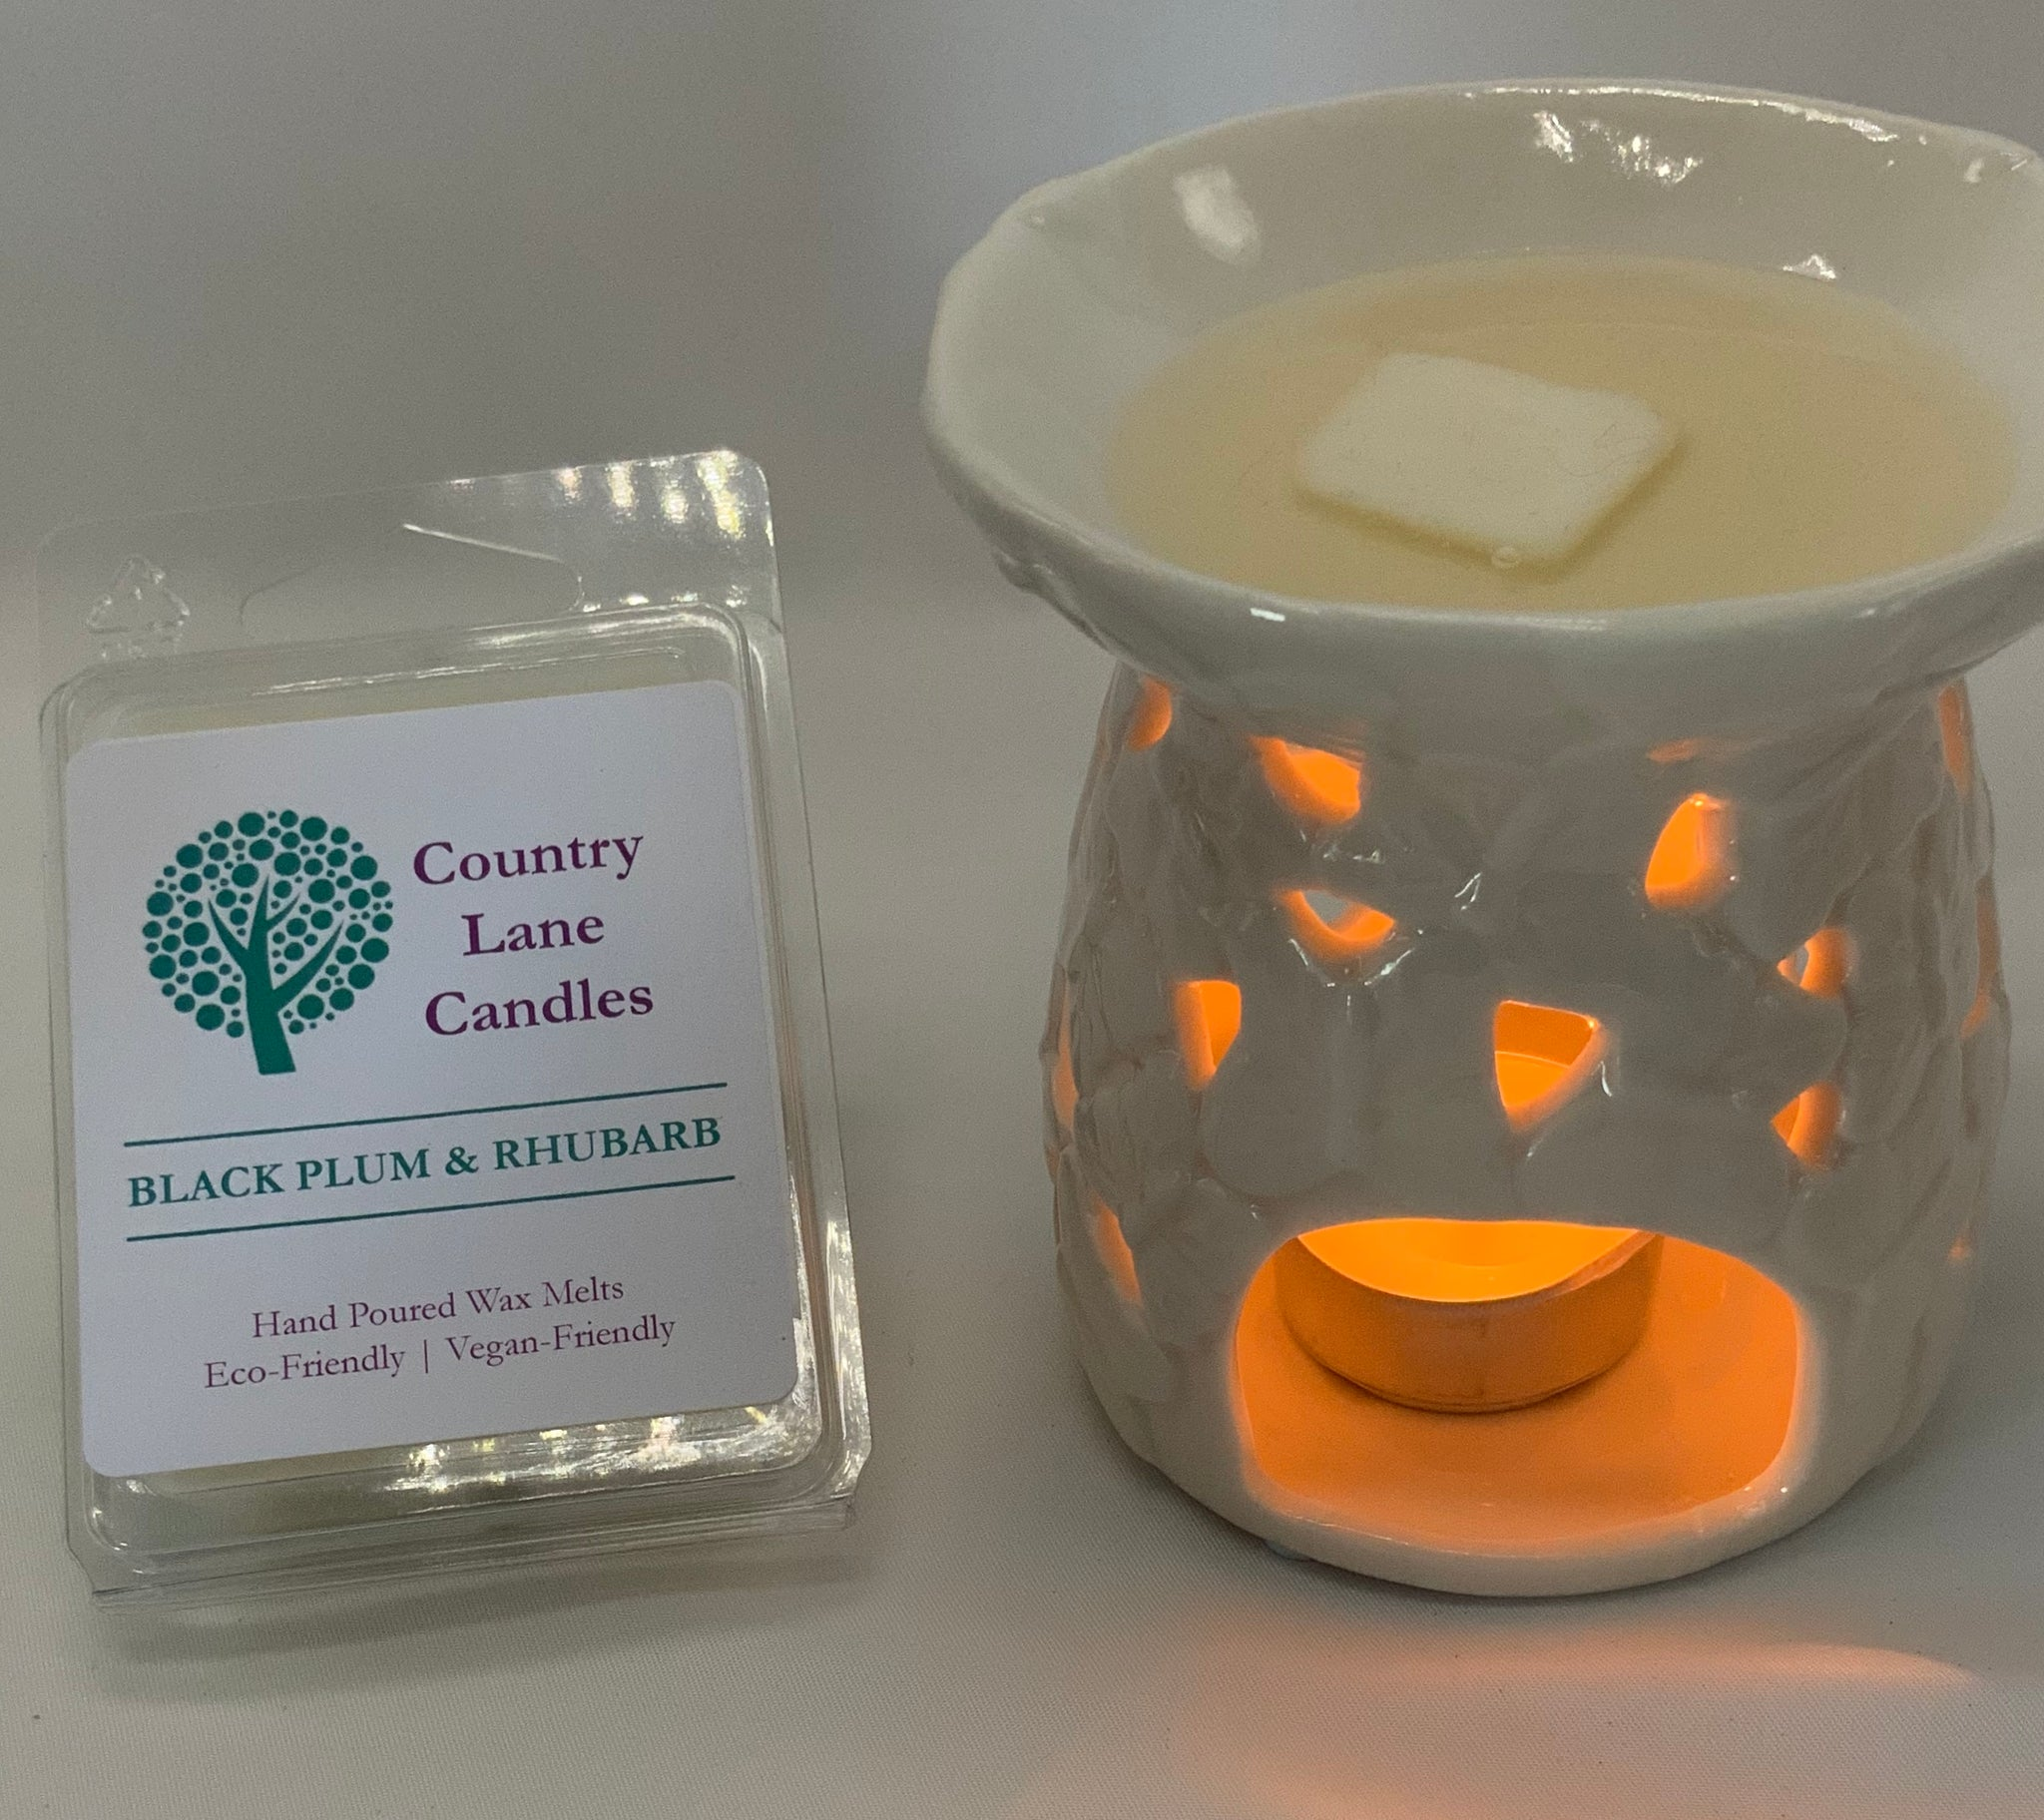 Black Plum & Rhubarb Wax Melts